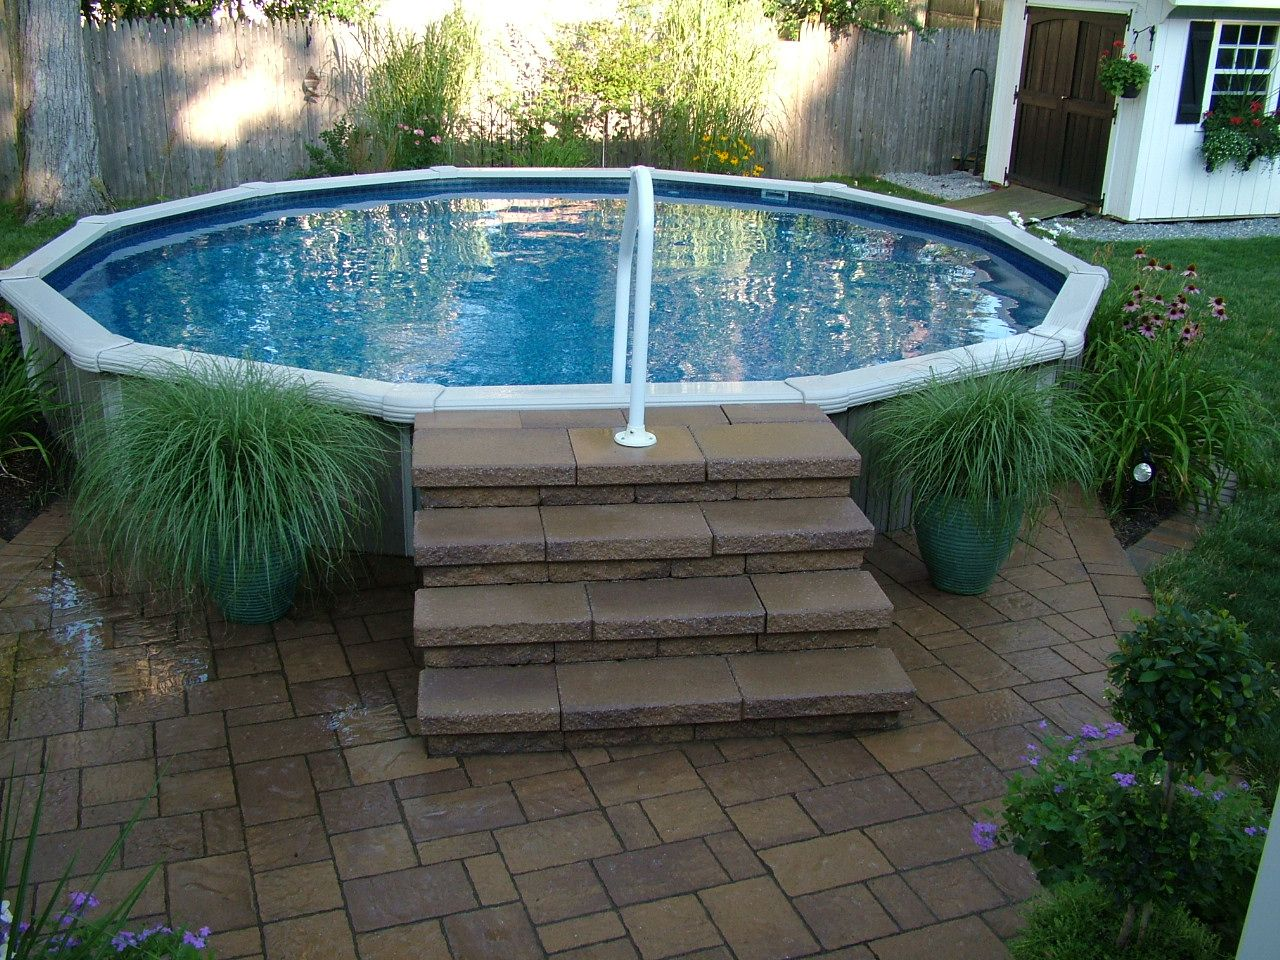 Pin by karessa haley on back yard oasis pinterest - Above ground pool steps for decks ...